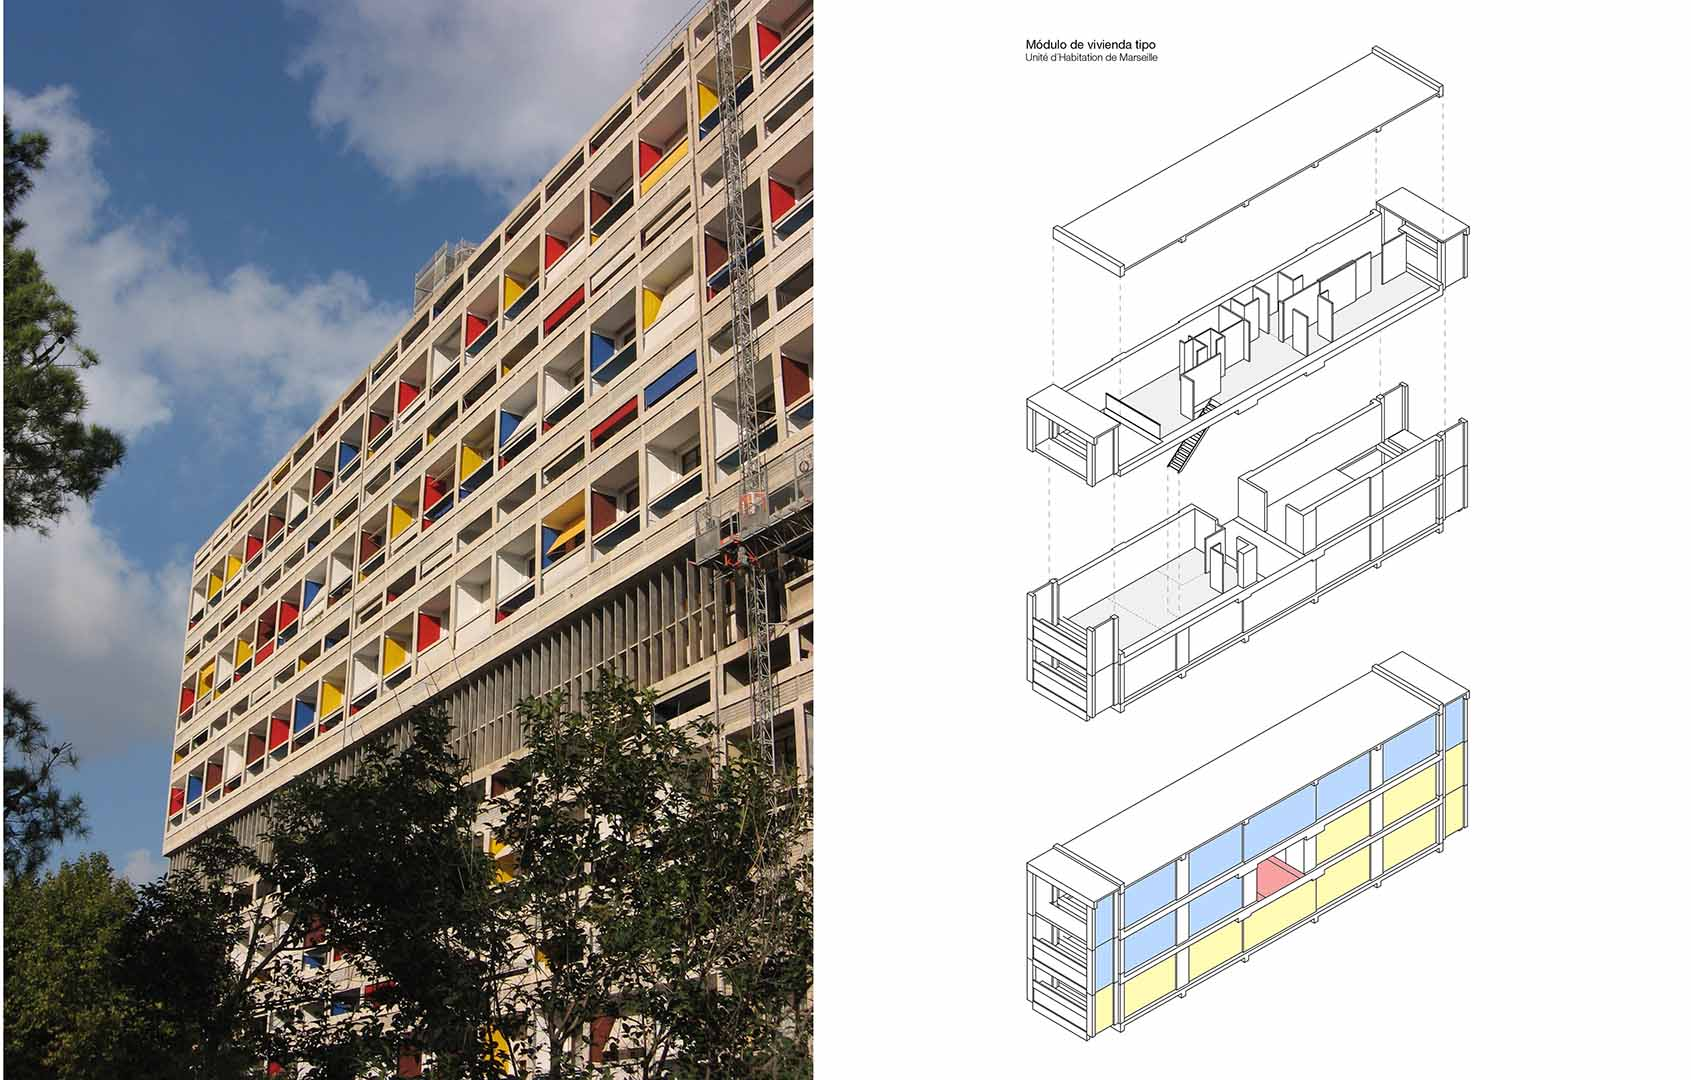 Many concepts about architecture have changed since Le Corbusier